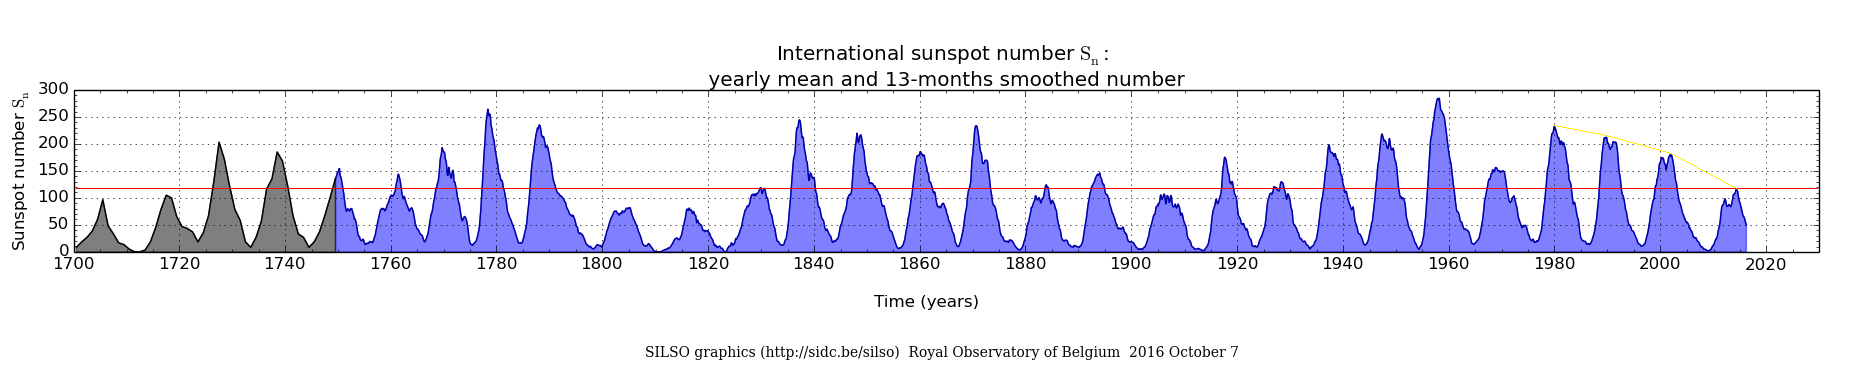 sunspotnumbersidc